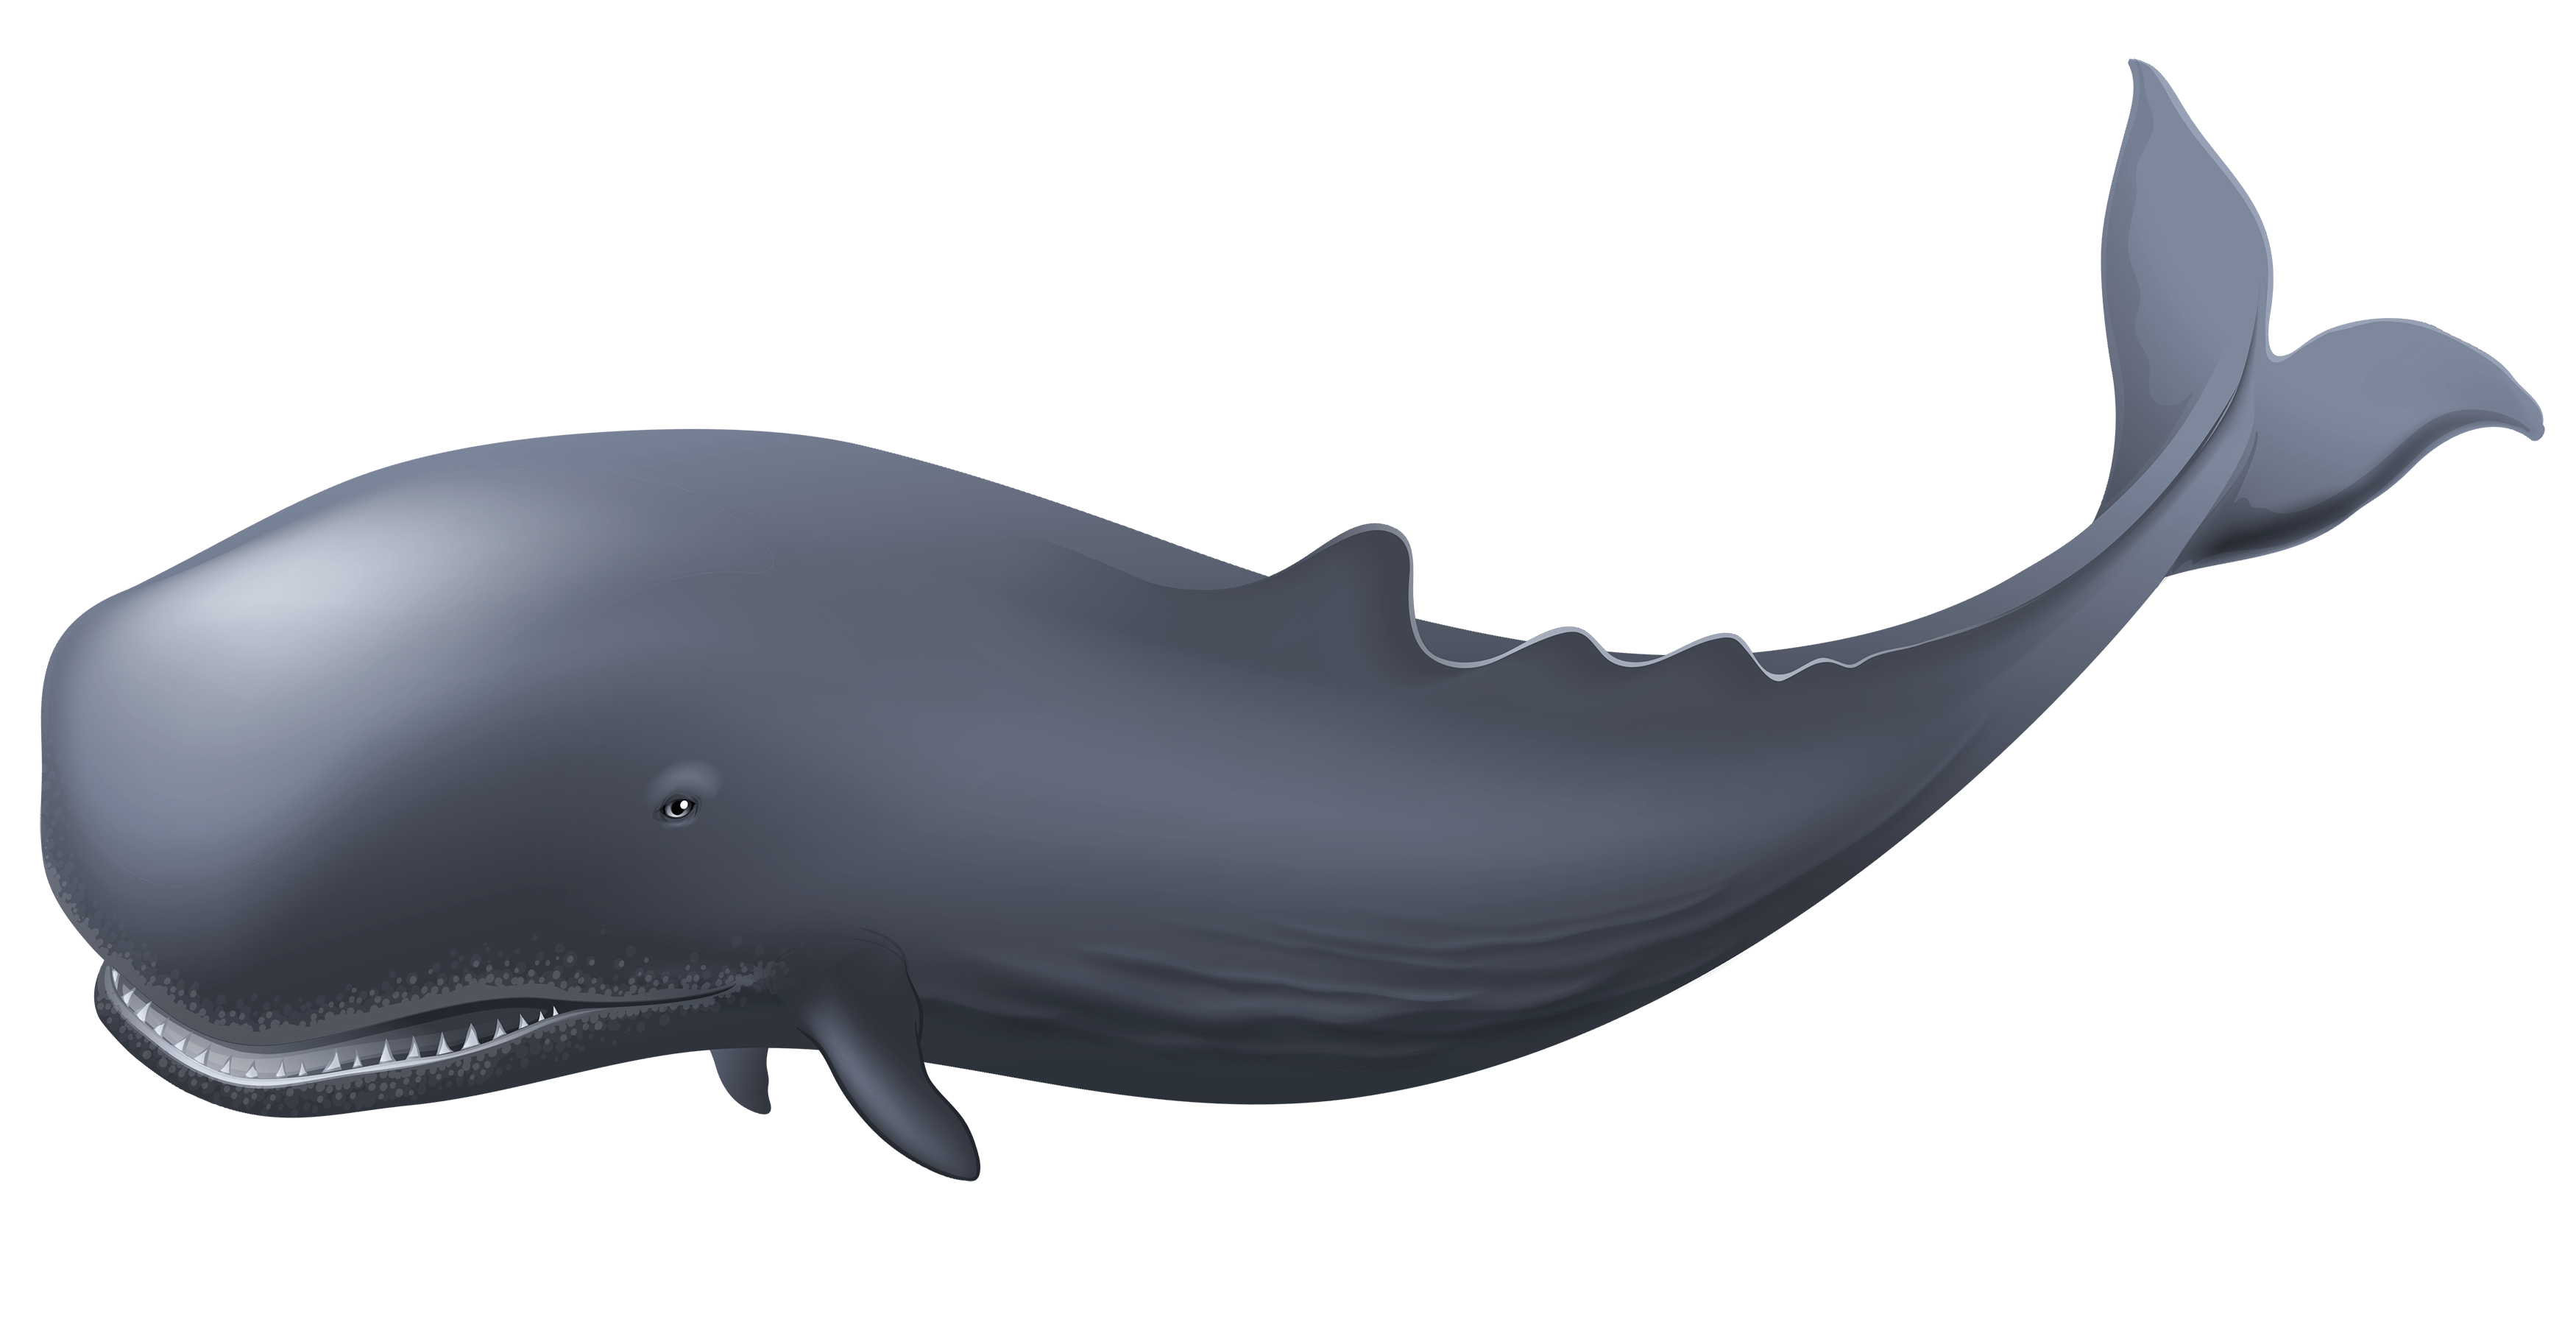 Whale Clipart Whale, Background images, Transparent